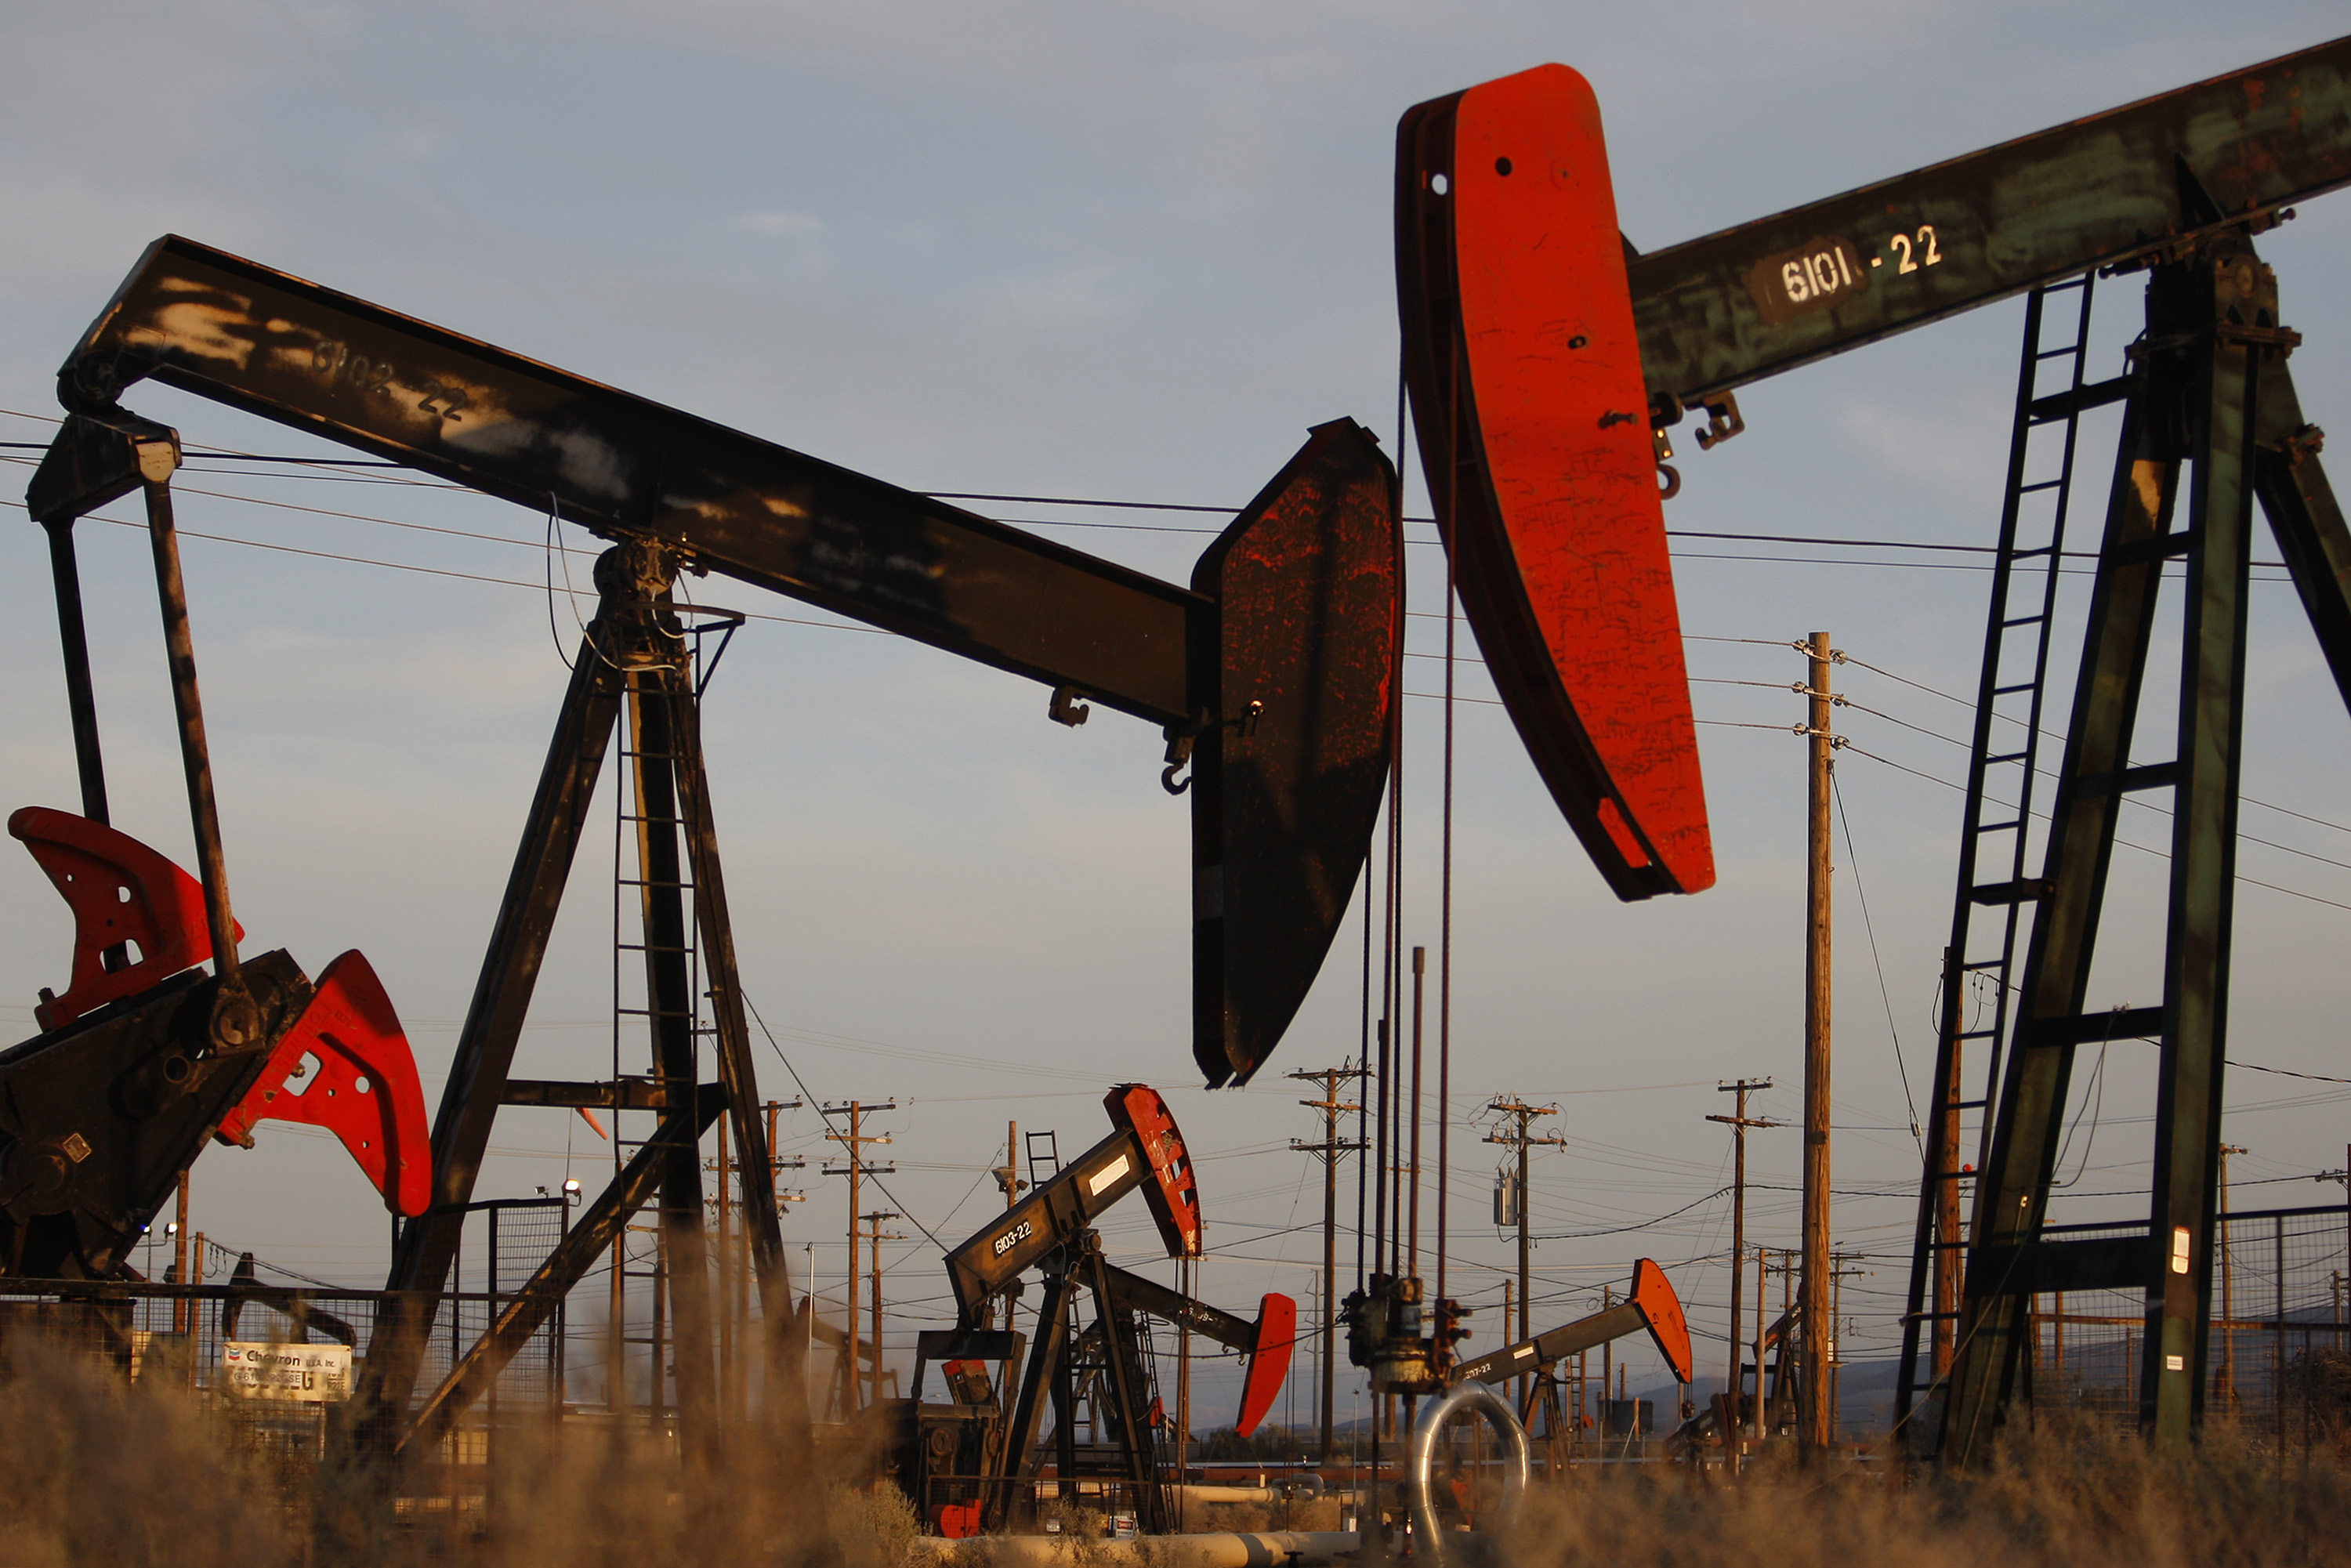 Pump jacks and wells are seen in an oil field on the Monterey Shale formation where gas and oil extraction using hydraulic fracturing, or fracking, is on the verge of a boom on March 23, 2014 near McKittrick, California.